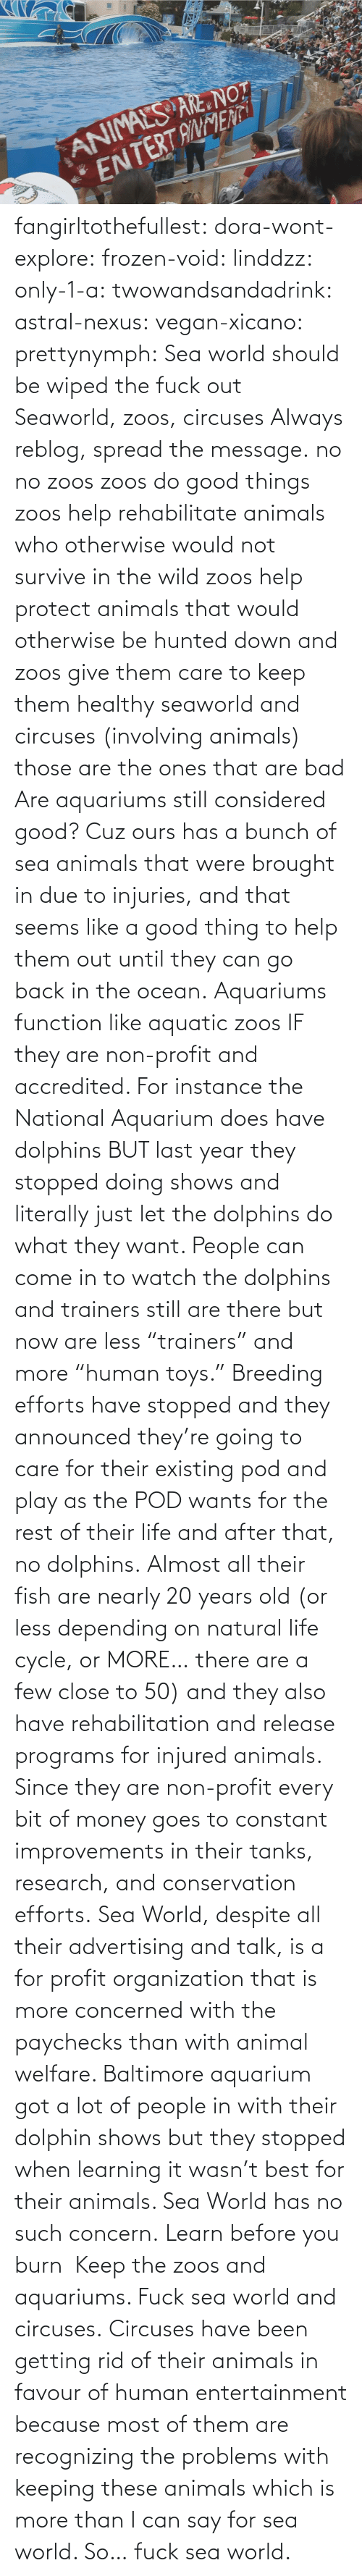 "function: fangirltothefullest:  dora-wont-explore:  frozen-void:  linddzz:  only-1-a:  twowandsandadrink:  astral-nexus:  vegan-xicano:  prettynymph:  Sea world should be wiped the fuck out  Seaworld, zoos, circuses  Always reblog, spread the message.  no no zoos zoos do good things zoos help rehabilitate animals who otherwise would not survive in the wild zoos help protect animals that would otherwise be hunted down and zoos give them care to keep them healthy seaworld and circuses (involving animals) those are the ones that are bad  Are aquariums still considered good? Cuz ours has a bunch of sea animals that were brought in due to injuries, and that seems like a good thing to help them out until they can go back in the ocean.  Aquariums function like aquatic zoos IF they are non-profit and accredited. For instance the National Aquarium does have dolphins BUT last year they stopped doing shows and literally just let the dolphins do what they want. People can come in to watch the dolphins and trainers still are there but now are less ""trainers"" and more ""human toys."" Breeding efforts have stopped and they announced they're going to care for their existing pod and play as the POD wants for the rest of their life and after that, no dolphins. Almost all their fish are nearly 20 years old (or less depending on natural life cycle, or MORE… there are a few close to 50) and they also have rehabilitation and release programs for injured animals. Since they are non-profit every bit of money goes to constant improvements in their tanks, research, and conservation efforts. Sea World, despite all their advertising and talk, is a for profit organization that is more concerned with the paychecks than with animal welfare. Baltimore aquarium got a lot of people in with their dolphin shows but they stopped when learning it wasn't best for their animals. Sea World has no such concern.  Learn before you burn   Keep the zoos and aquariums. Fuck sea world and circuses.  Circuses have been getting rid of  their animals in favour of human entertainment because most of them are recognizing the problems with keeping these animals which is more than I can say for sea world. So… fuck sea world."